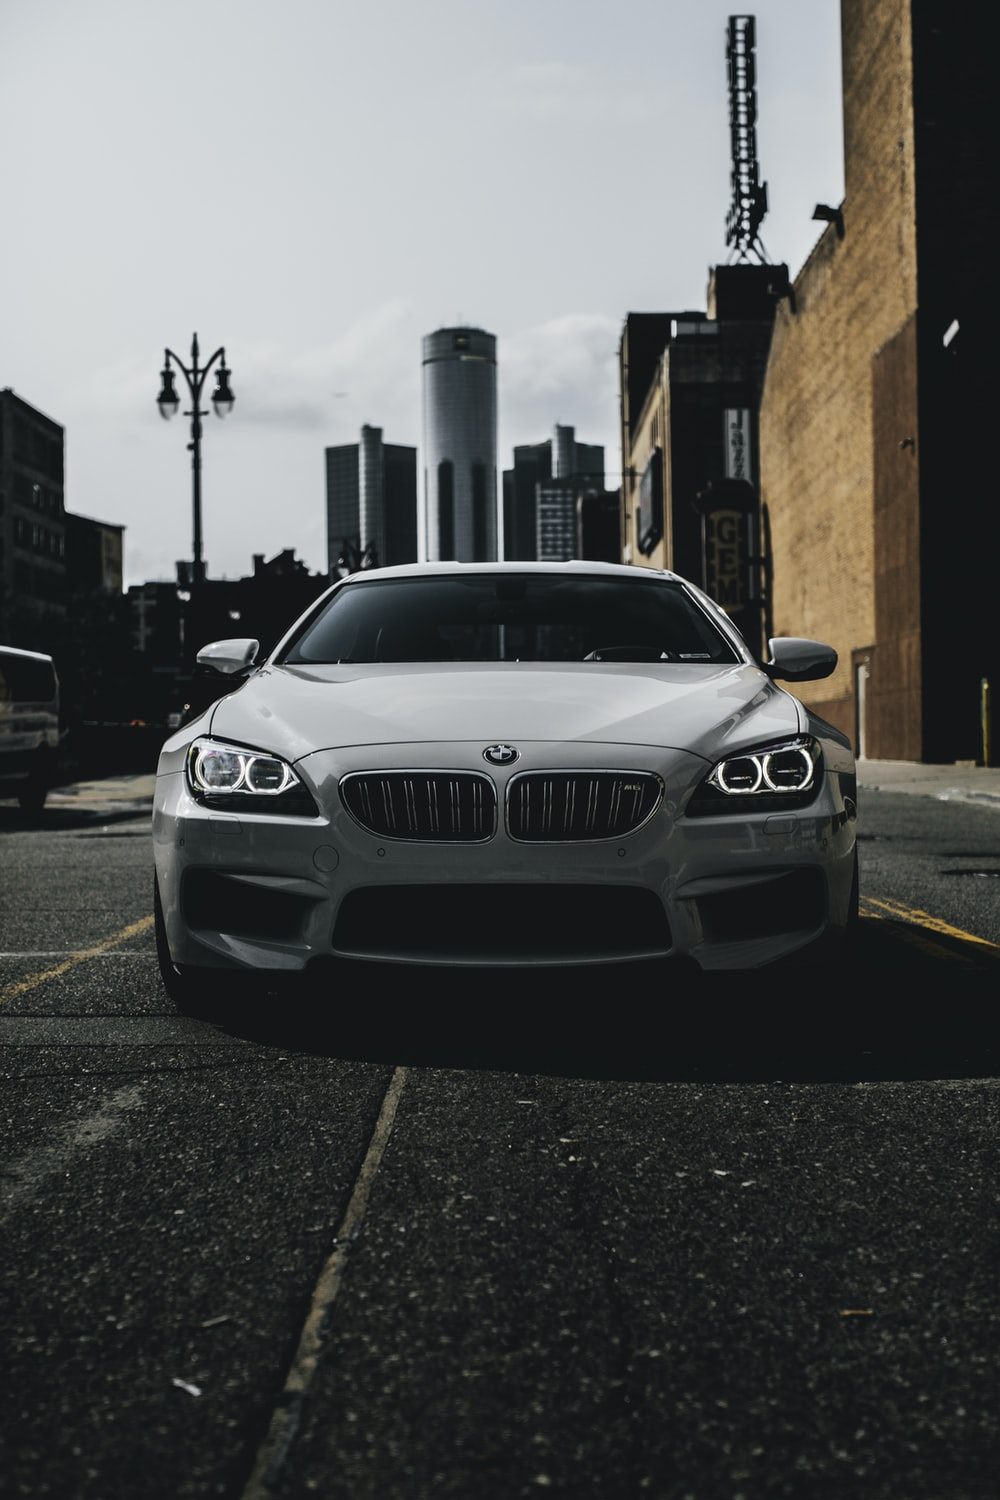 Auto Pictures HD Download Free Images Stock Photos On Unsplash